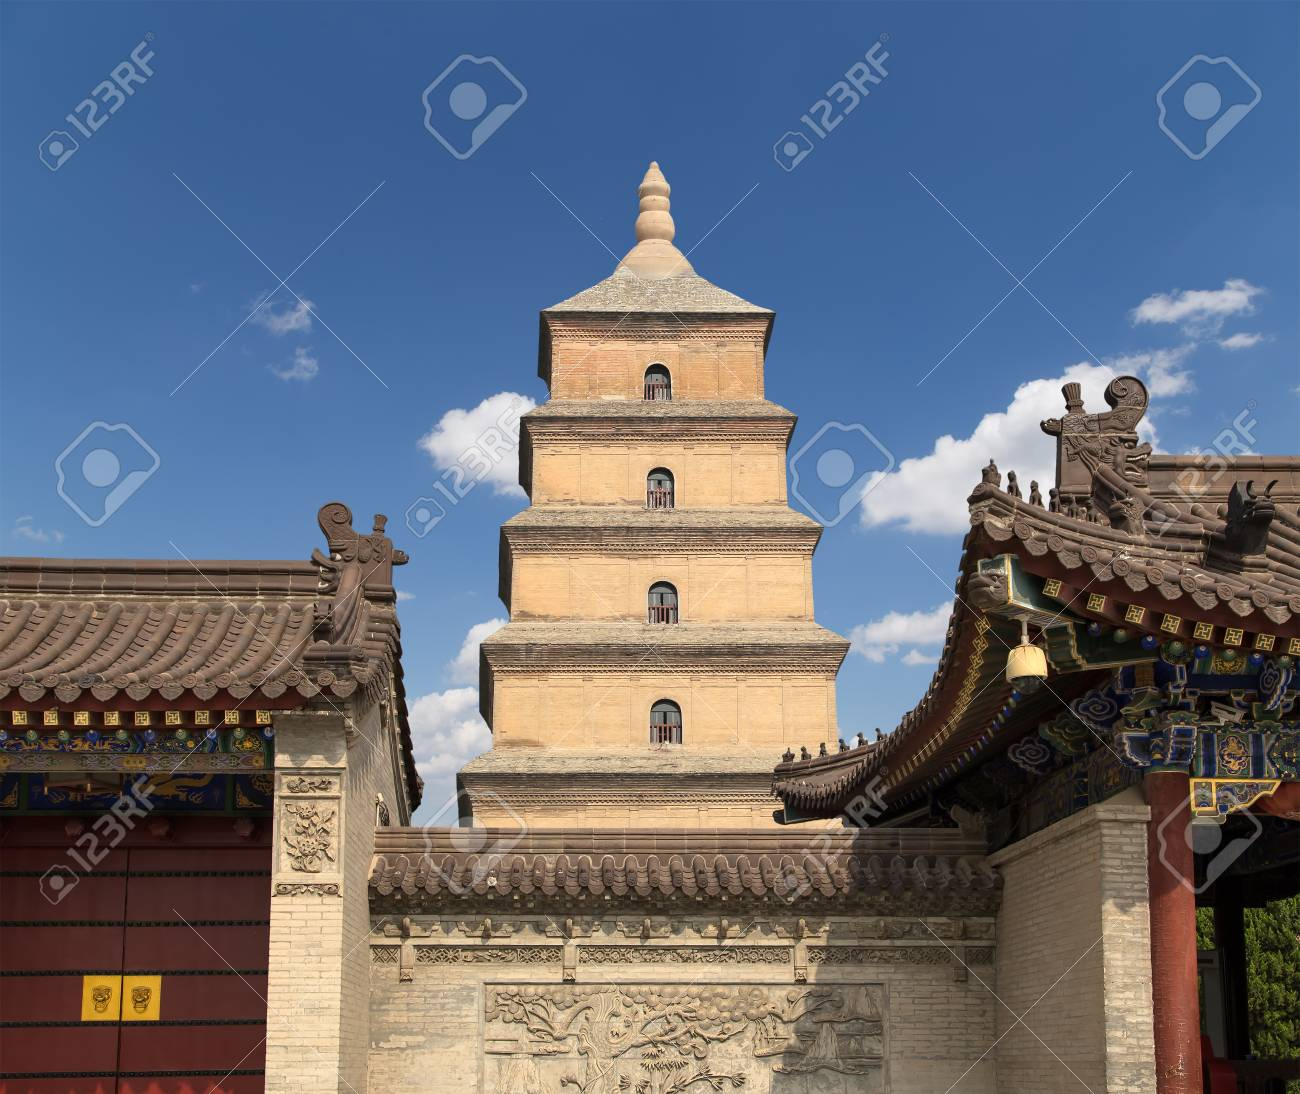 Giant Wild Goose Pagoda or Big Wild Goose Pagoda, is a Buddhist pagoda located in southern Xian (Sian, Xi'an),Shaanxi province, China Stock Photo - 24149728